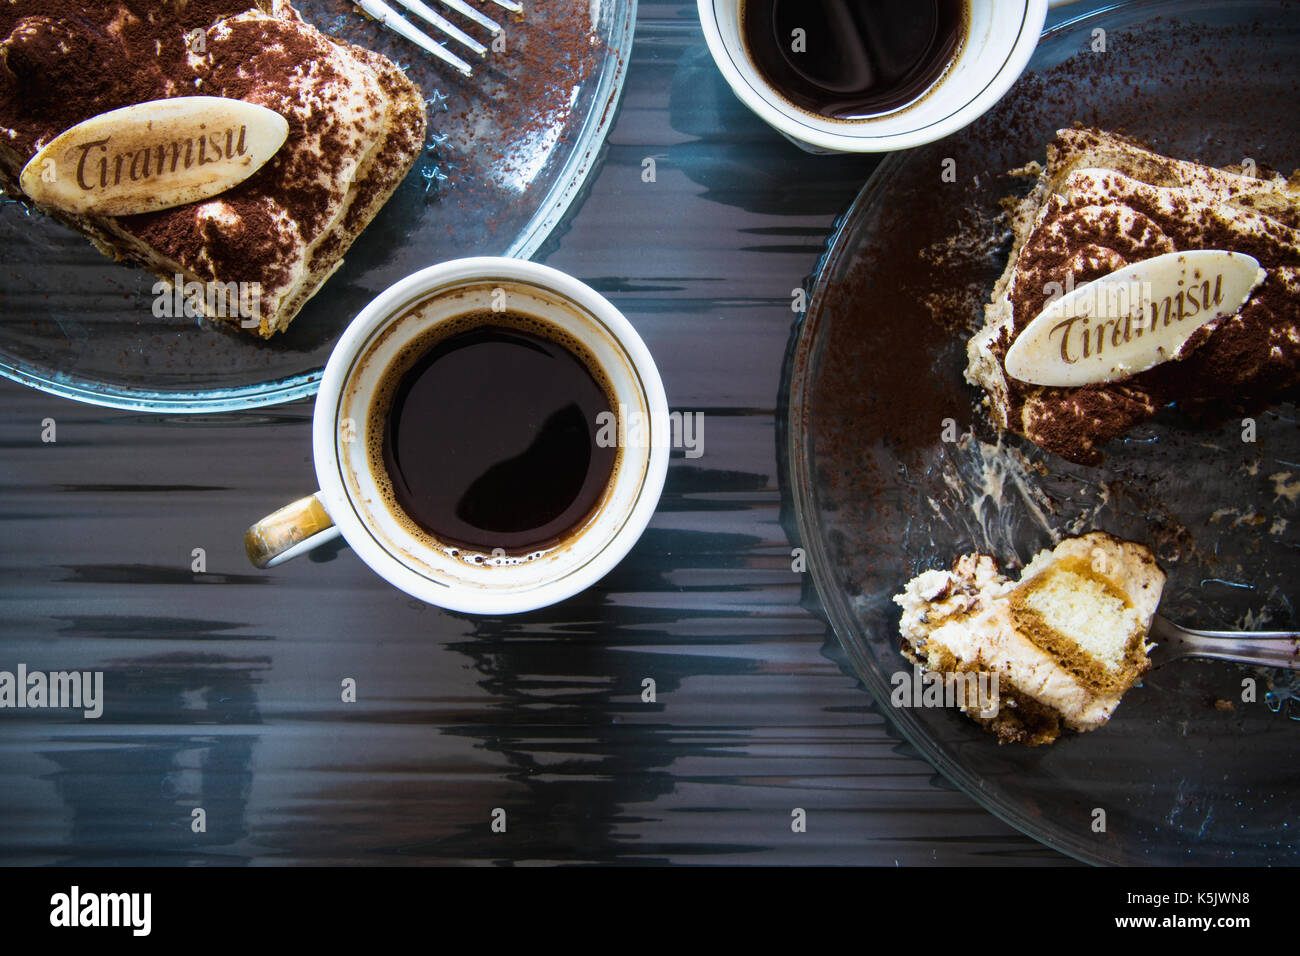 Top view of a tiramisu and coffee  for two - Stock Image